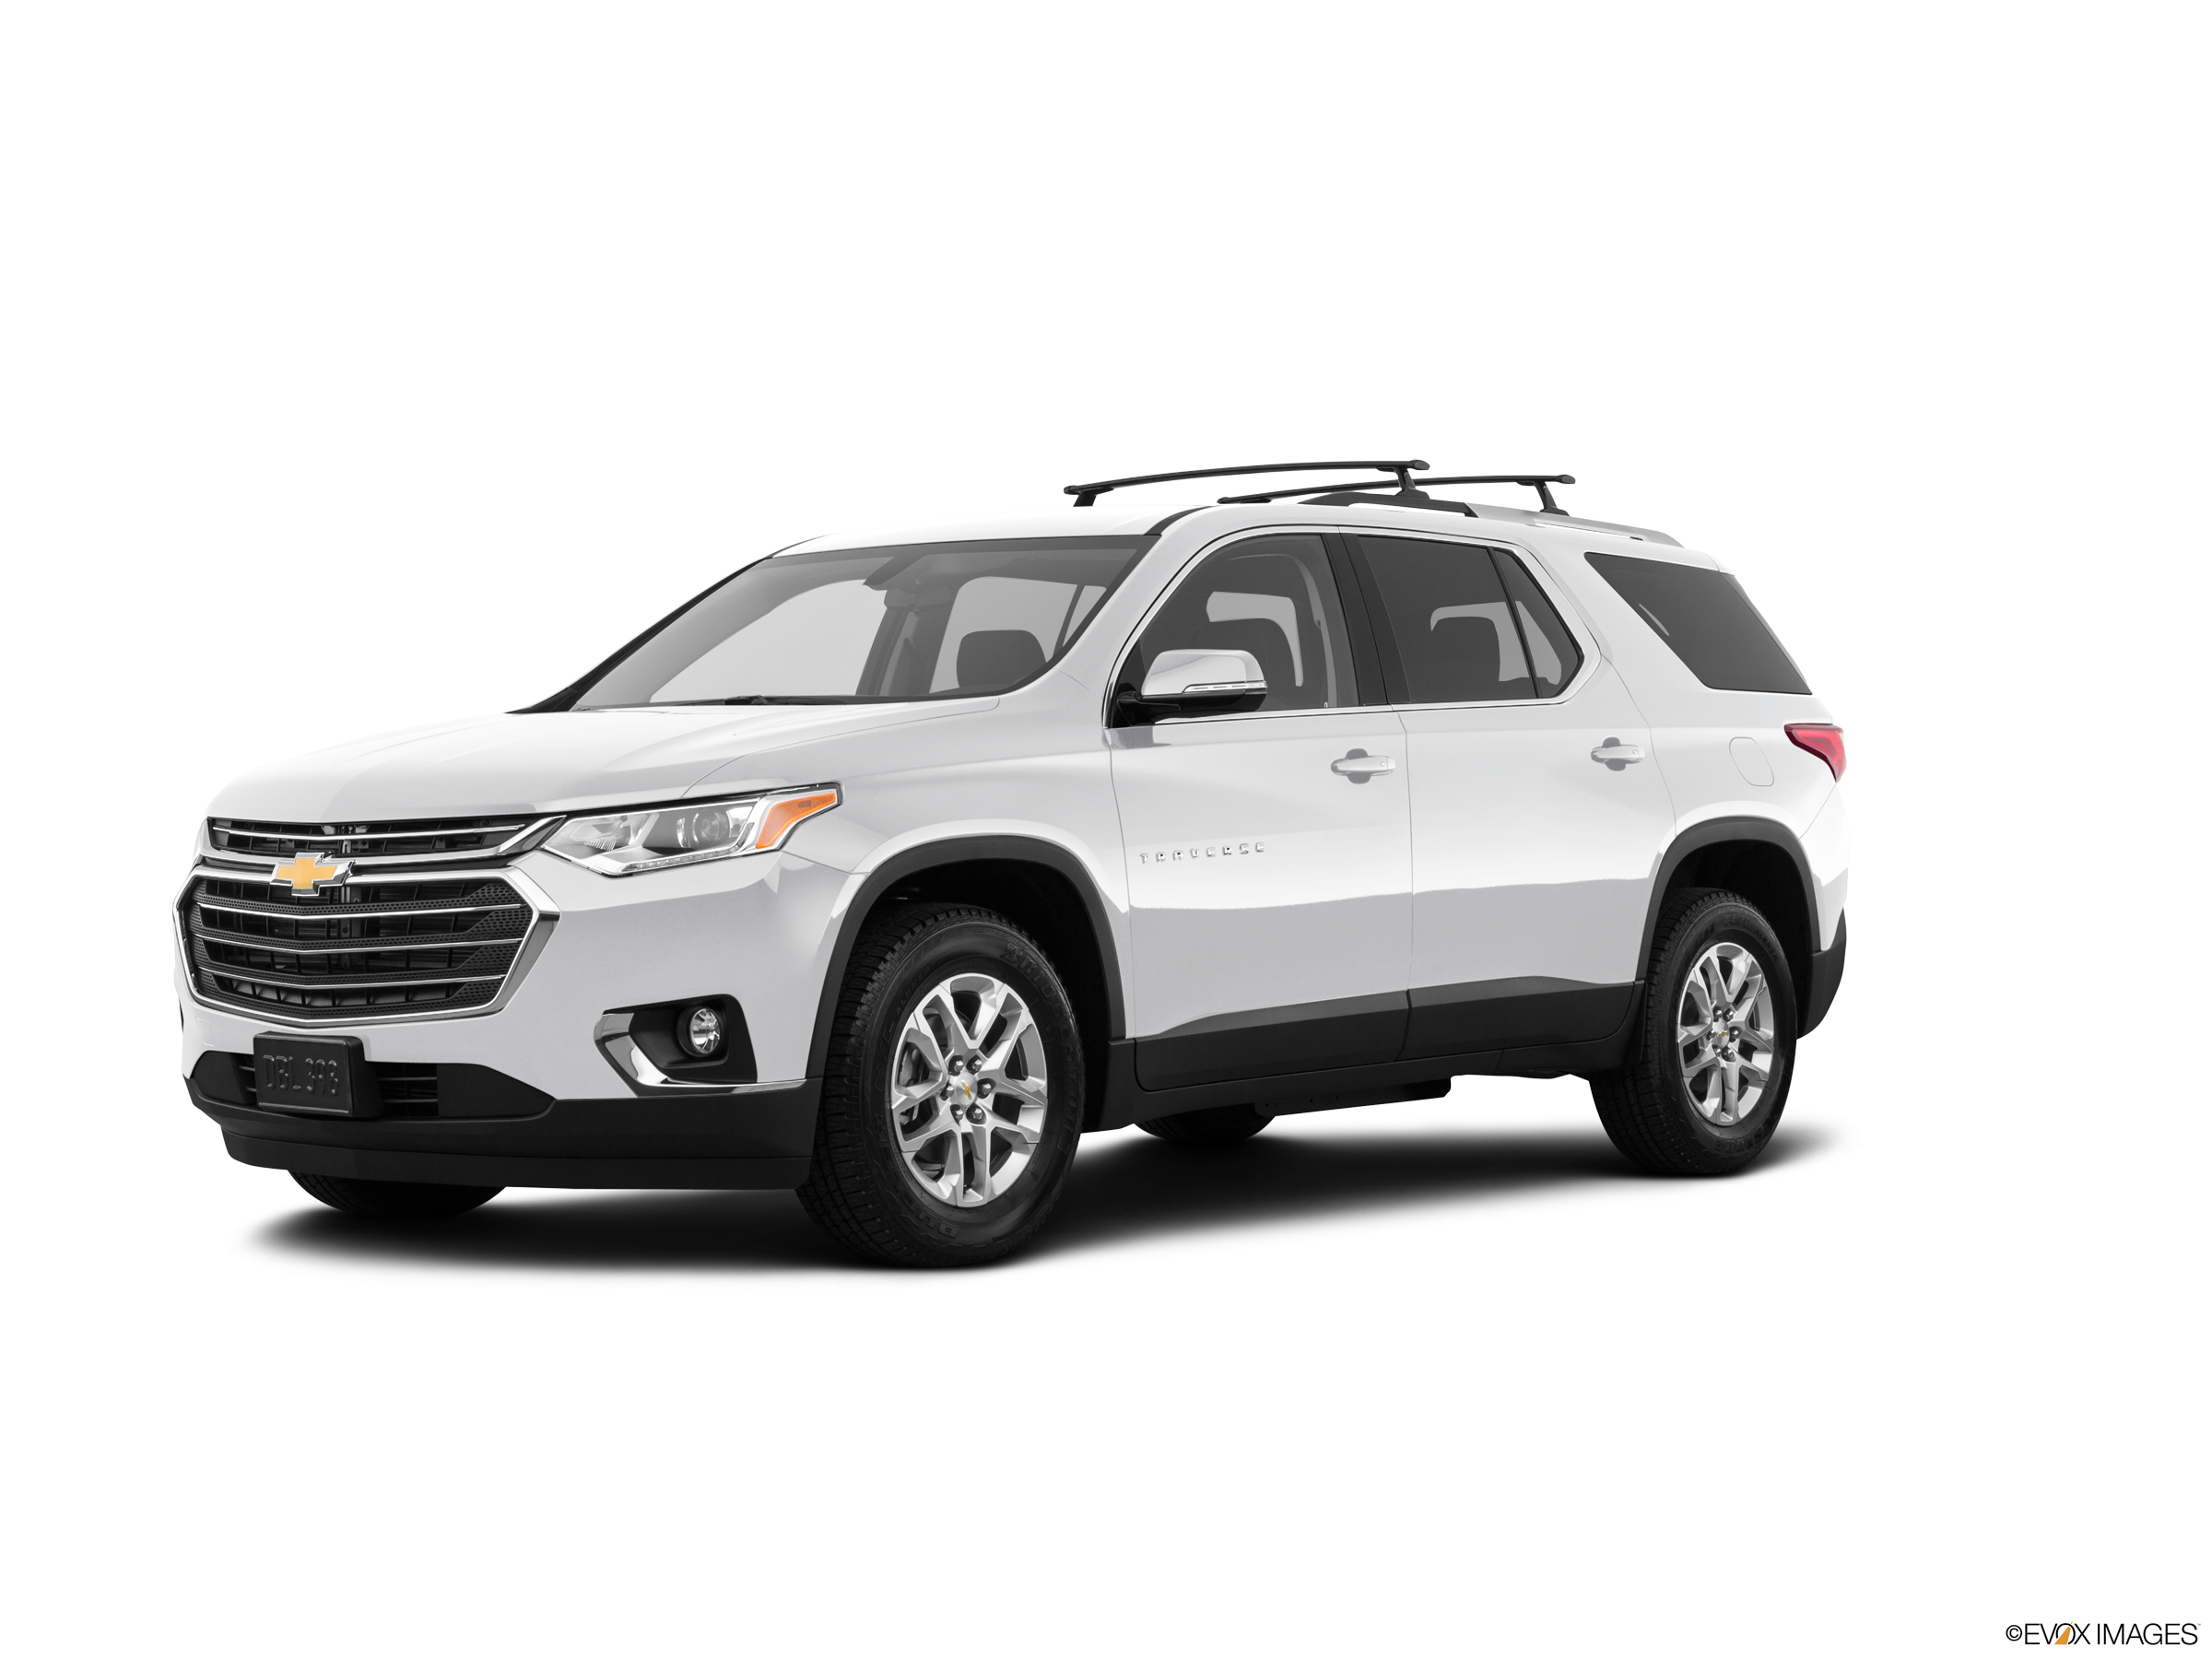 25 Best-Selling SUVs of 2018 - Chevrolet Traverse